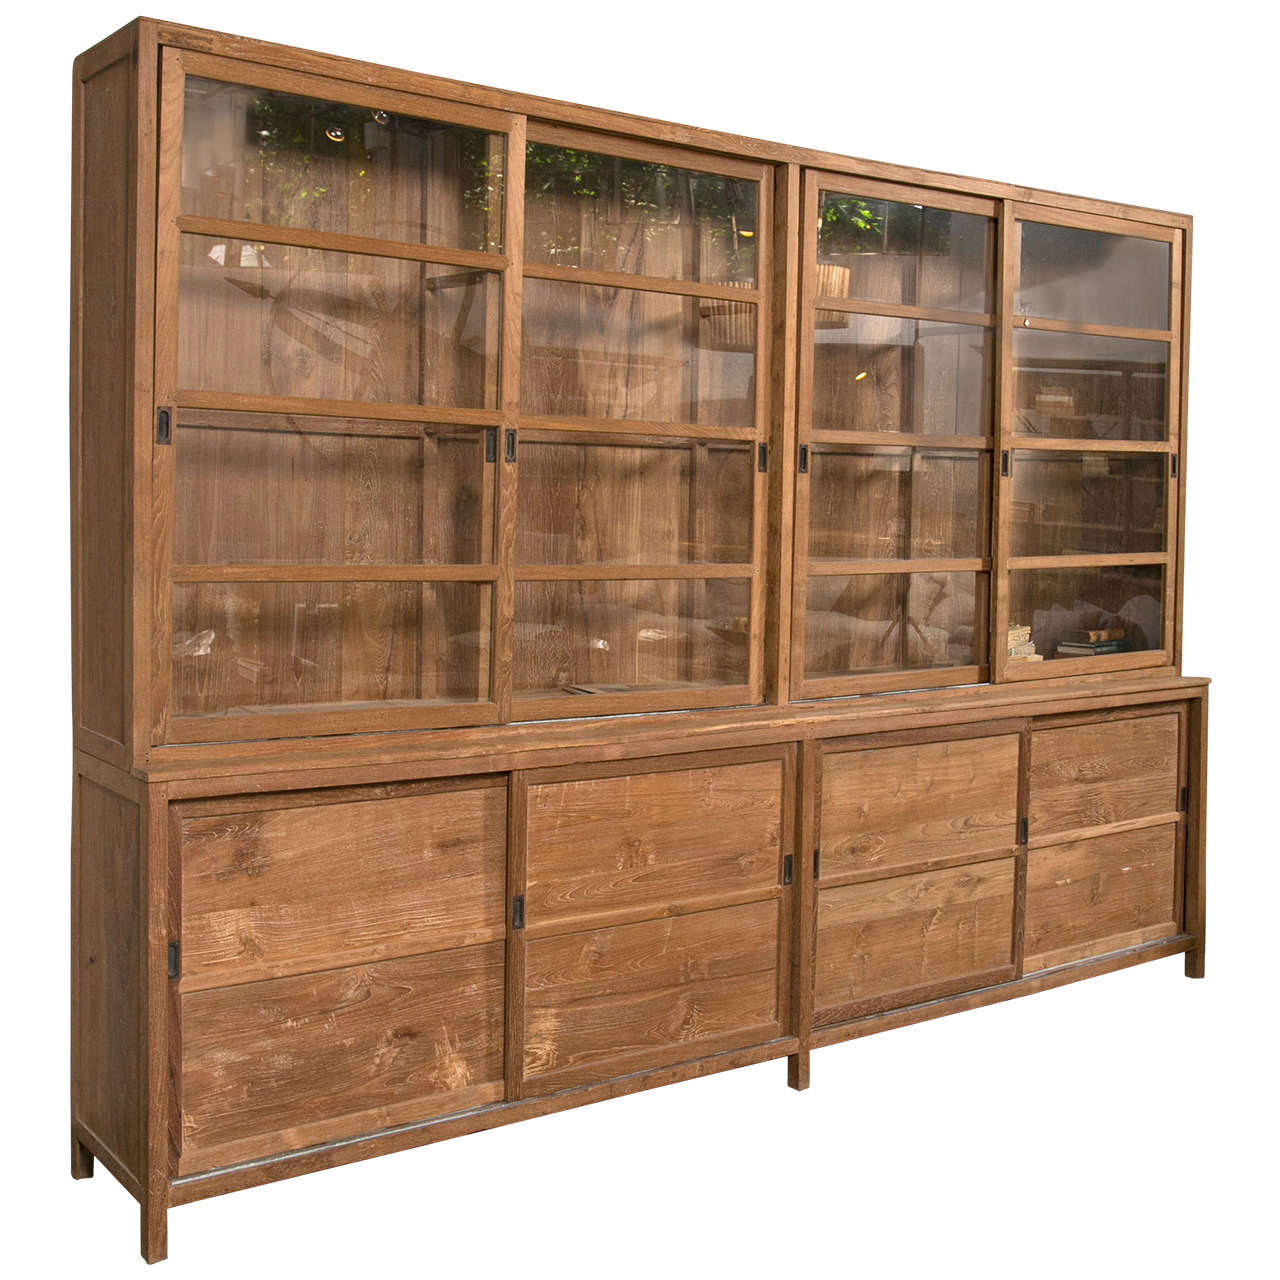 Sliding Glass Door Teak Cabinet At 1stdibs